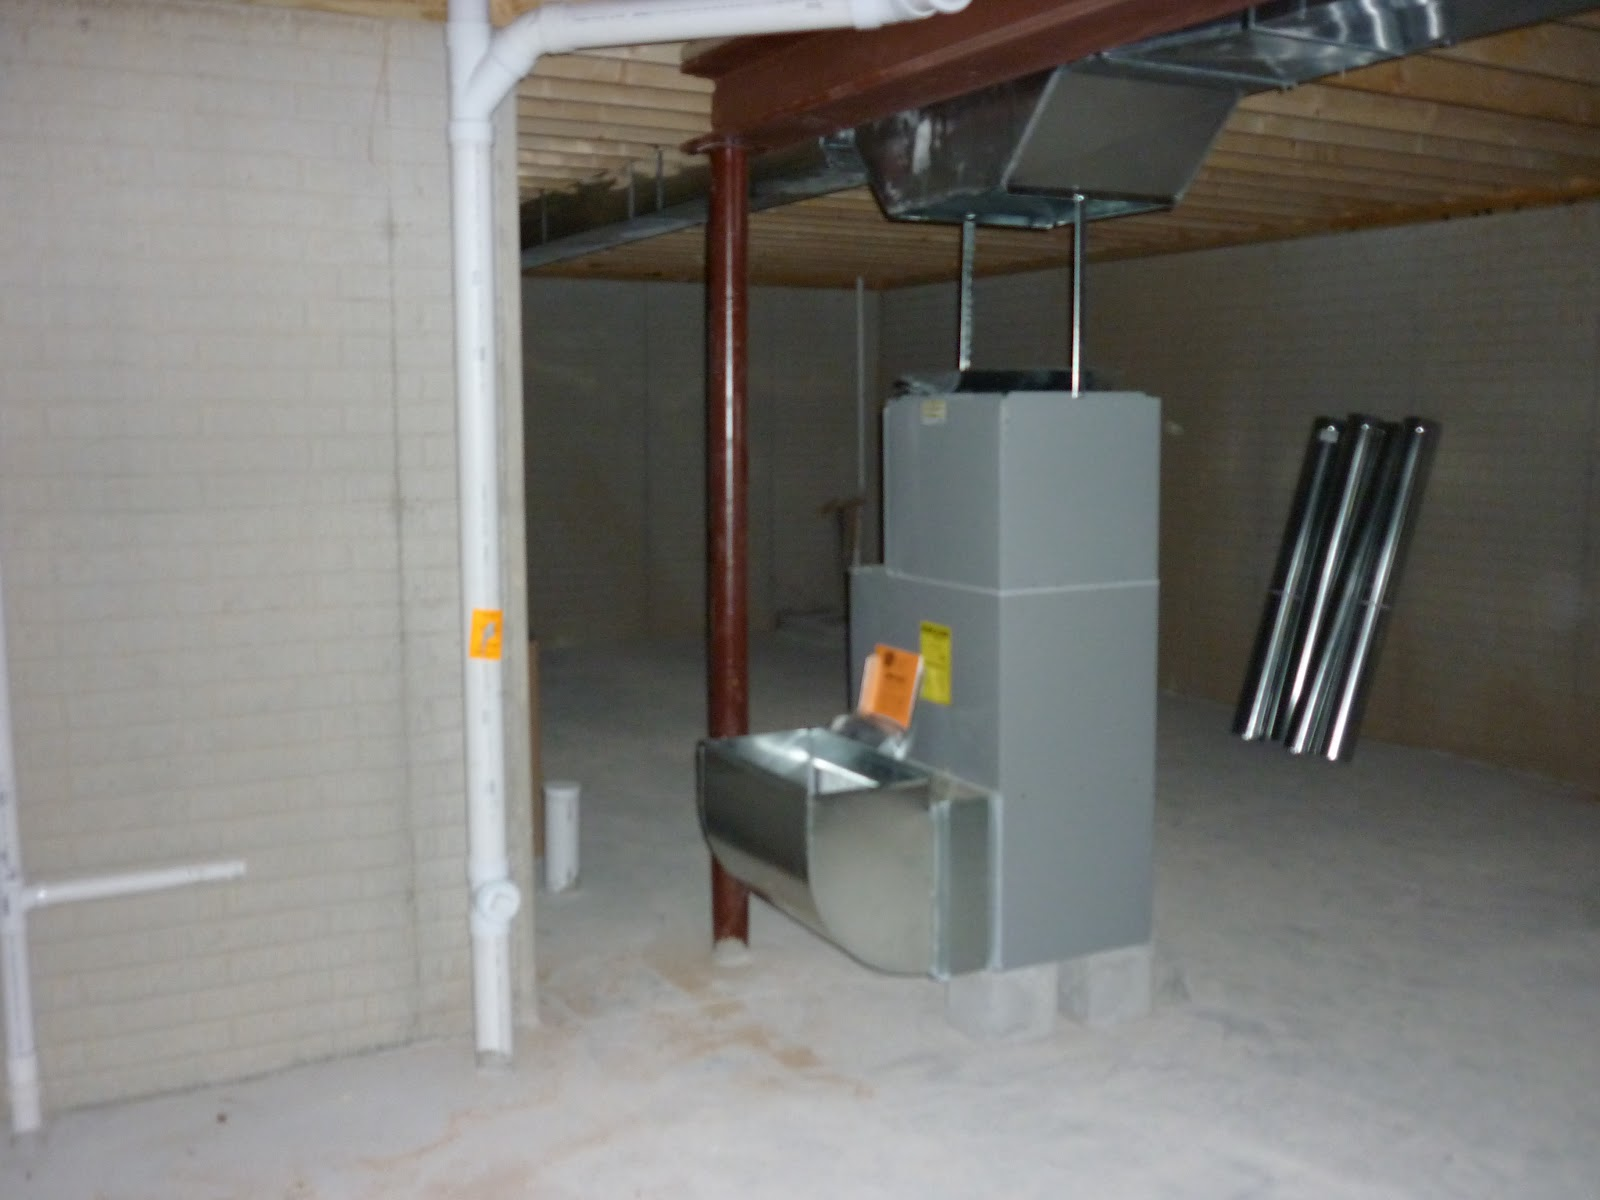 start of putting in the furnace in the basement